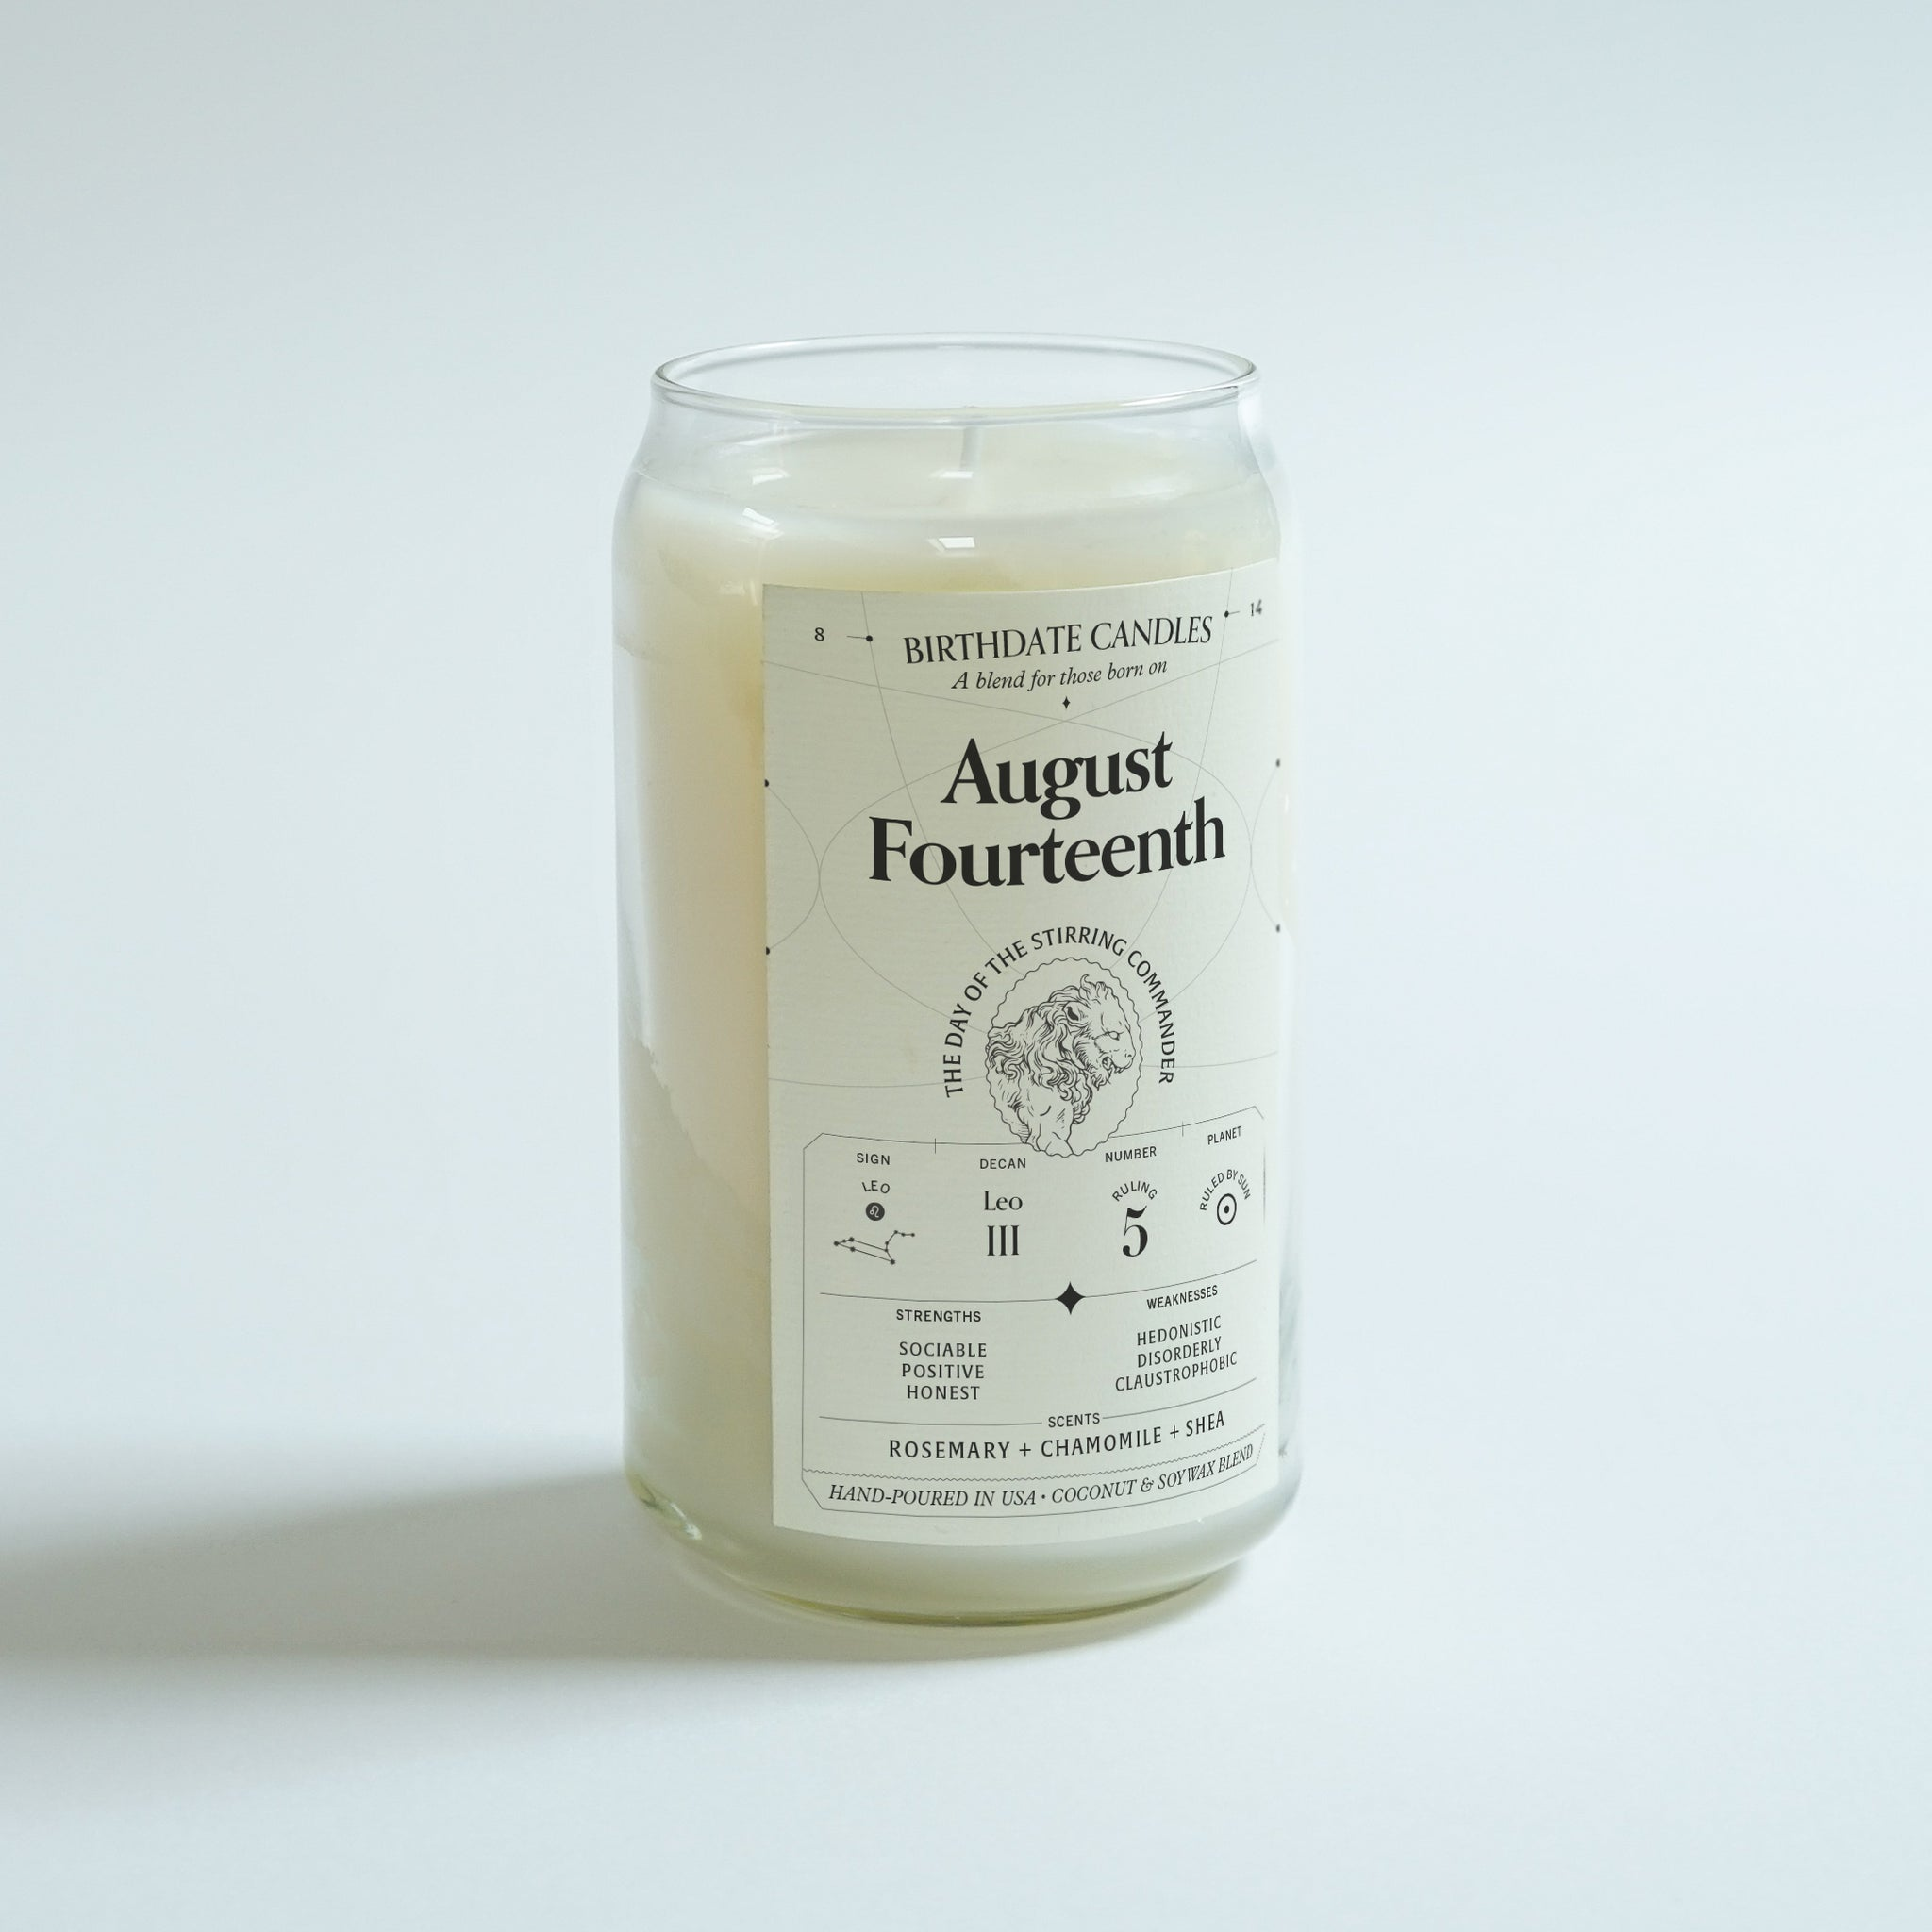 The August Fourteenth Birthday Candle